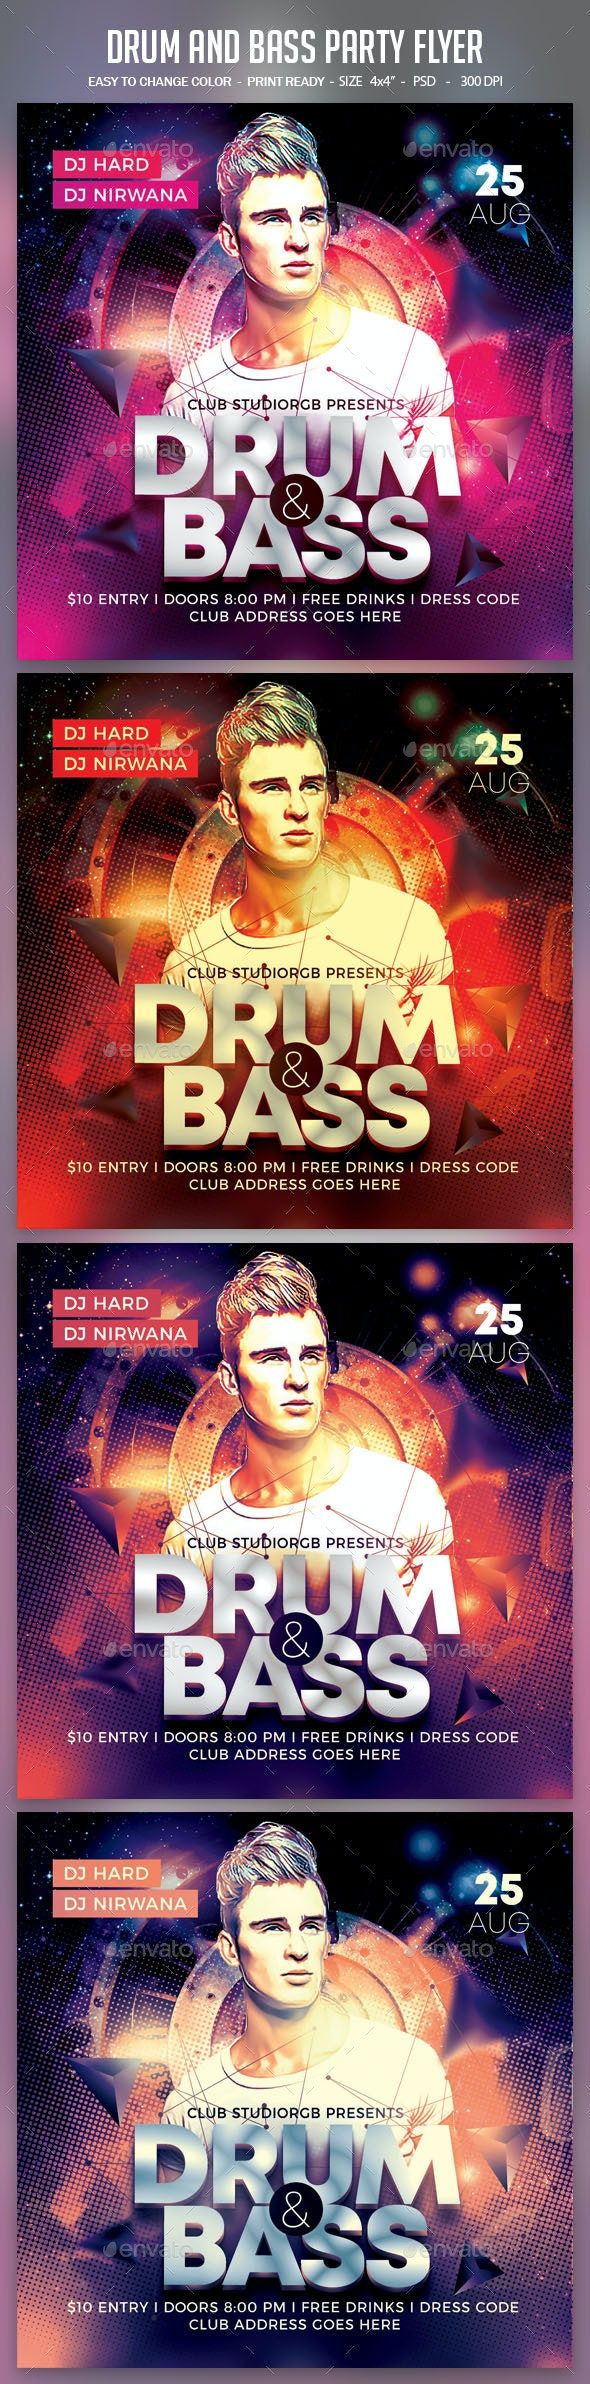 Drum and Bass Party Flyer - Clubs & Parties Events